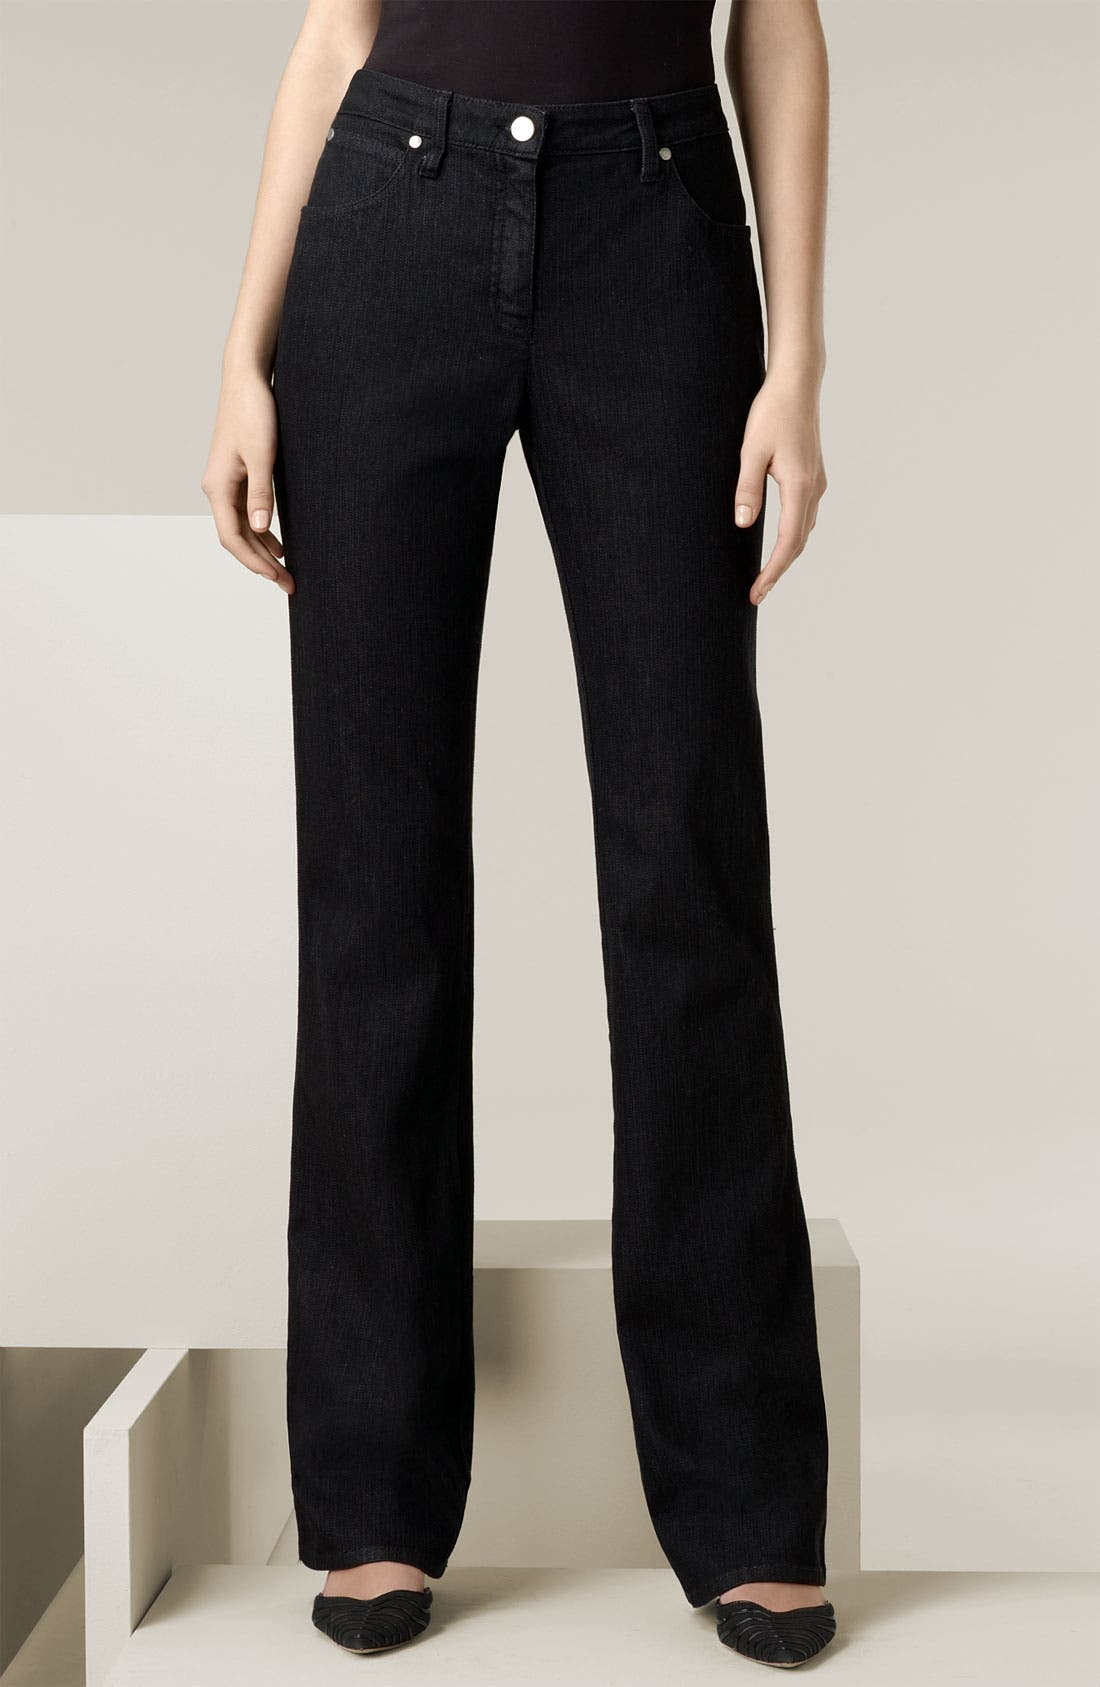 Alternate Image 1 Selected - Armani Collezioni Classic Stretch Denim Jeans